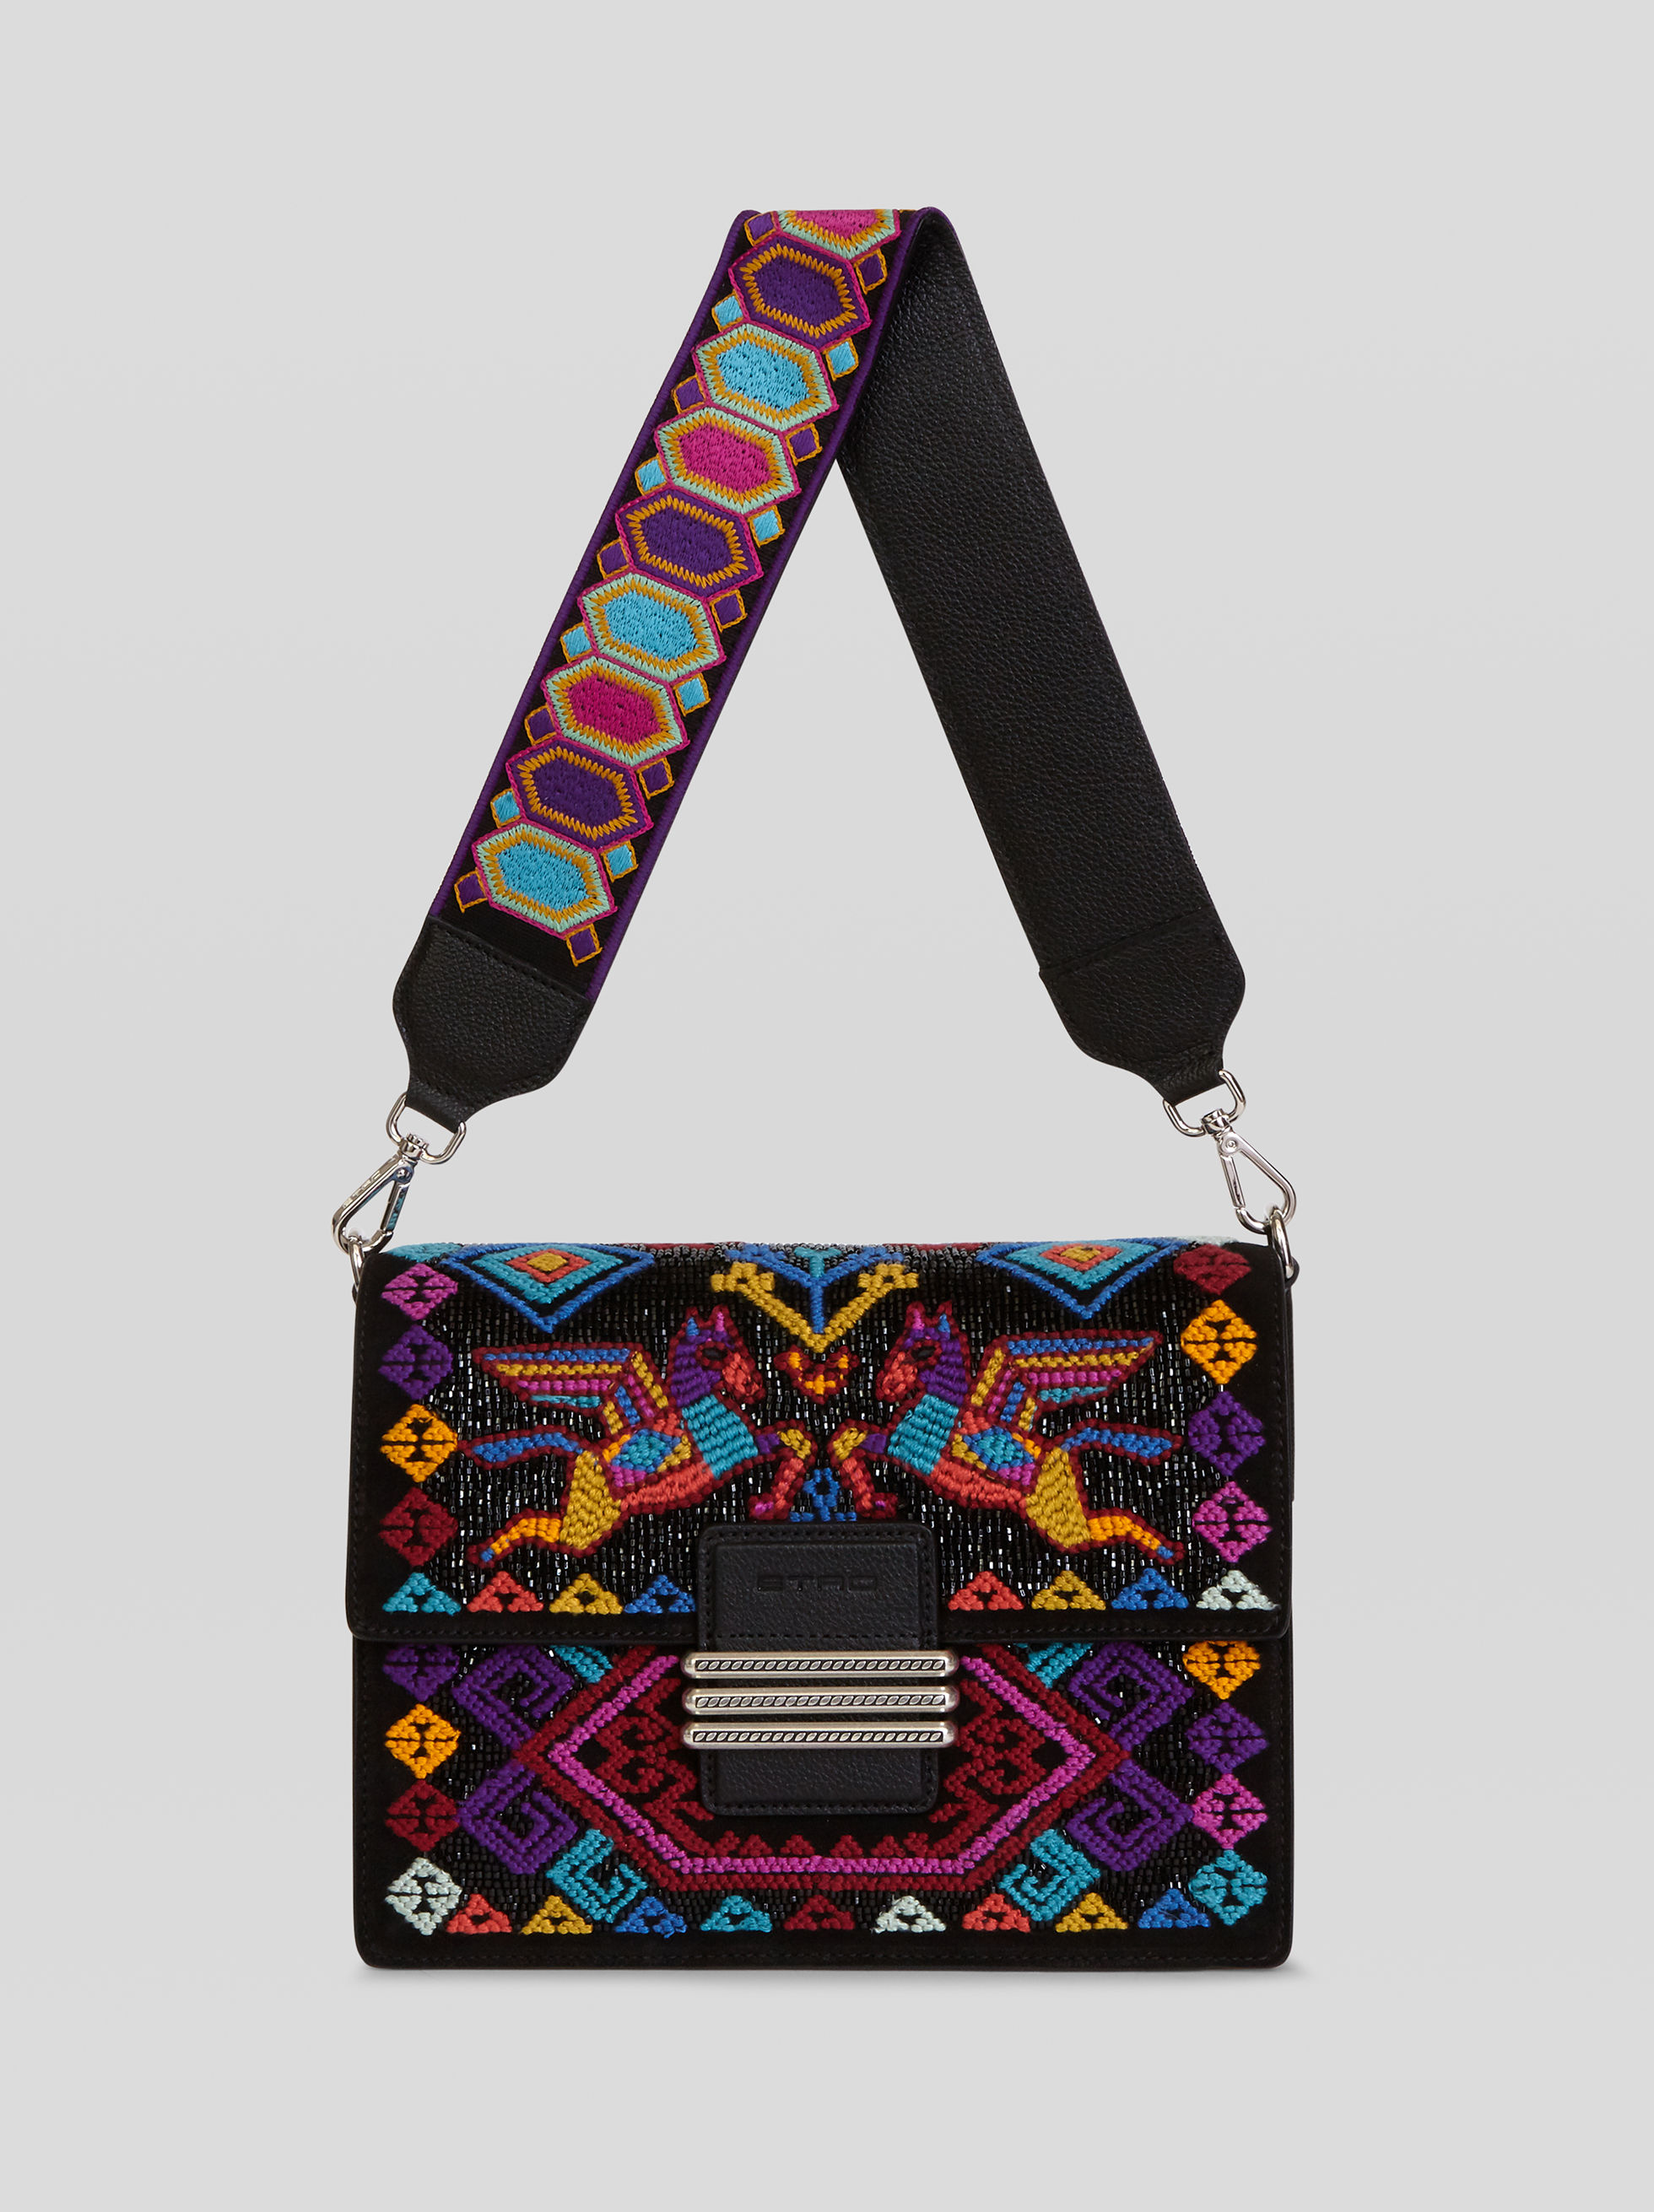 RAINBOW SHOULDER BAG WITH EMBROIDERY